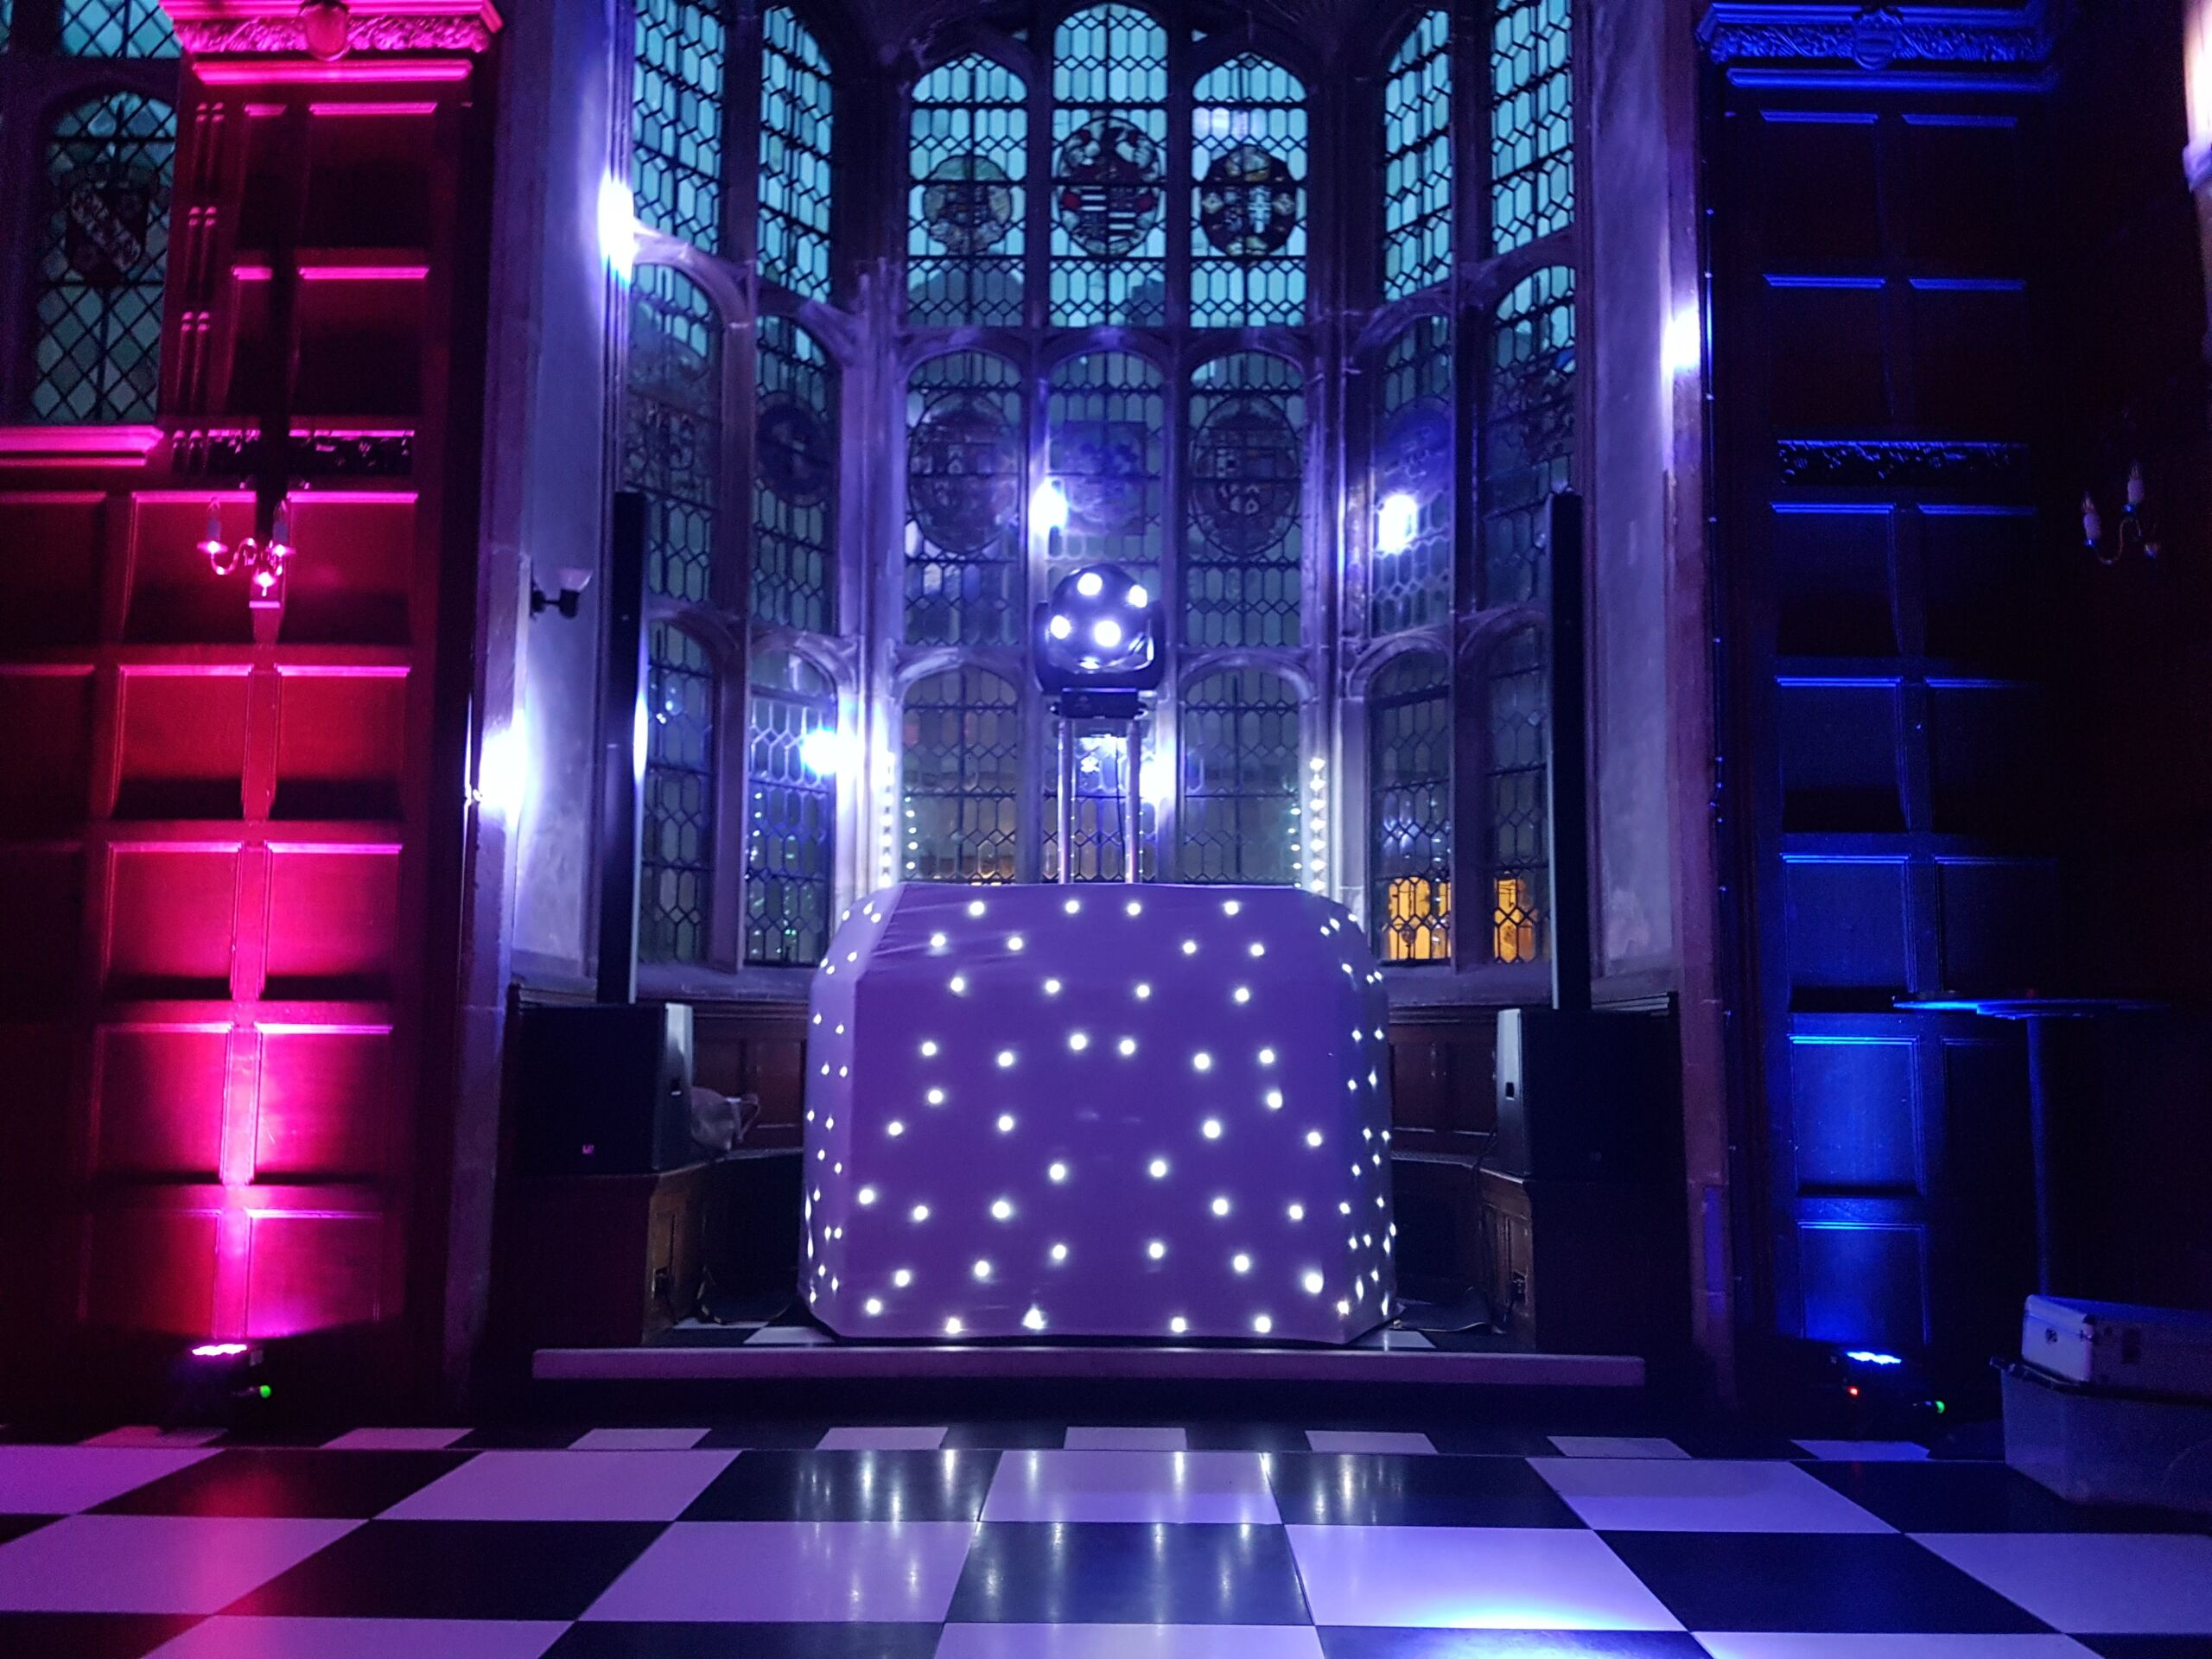 Mobile Disco set up at Hengrave Hall in Suffolk